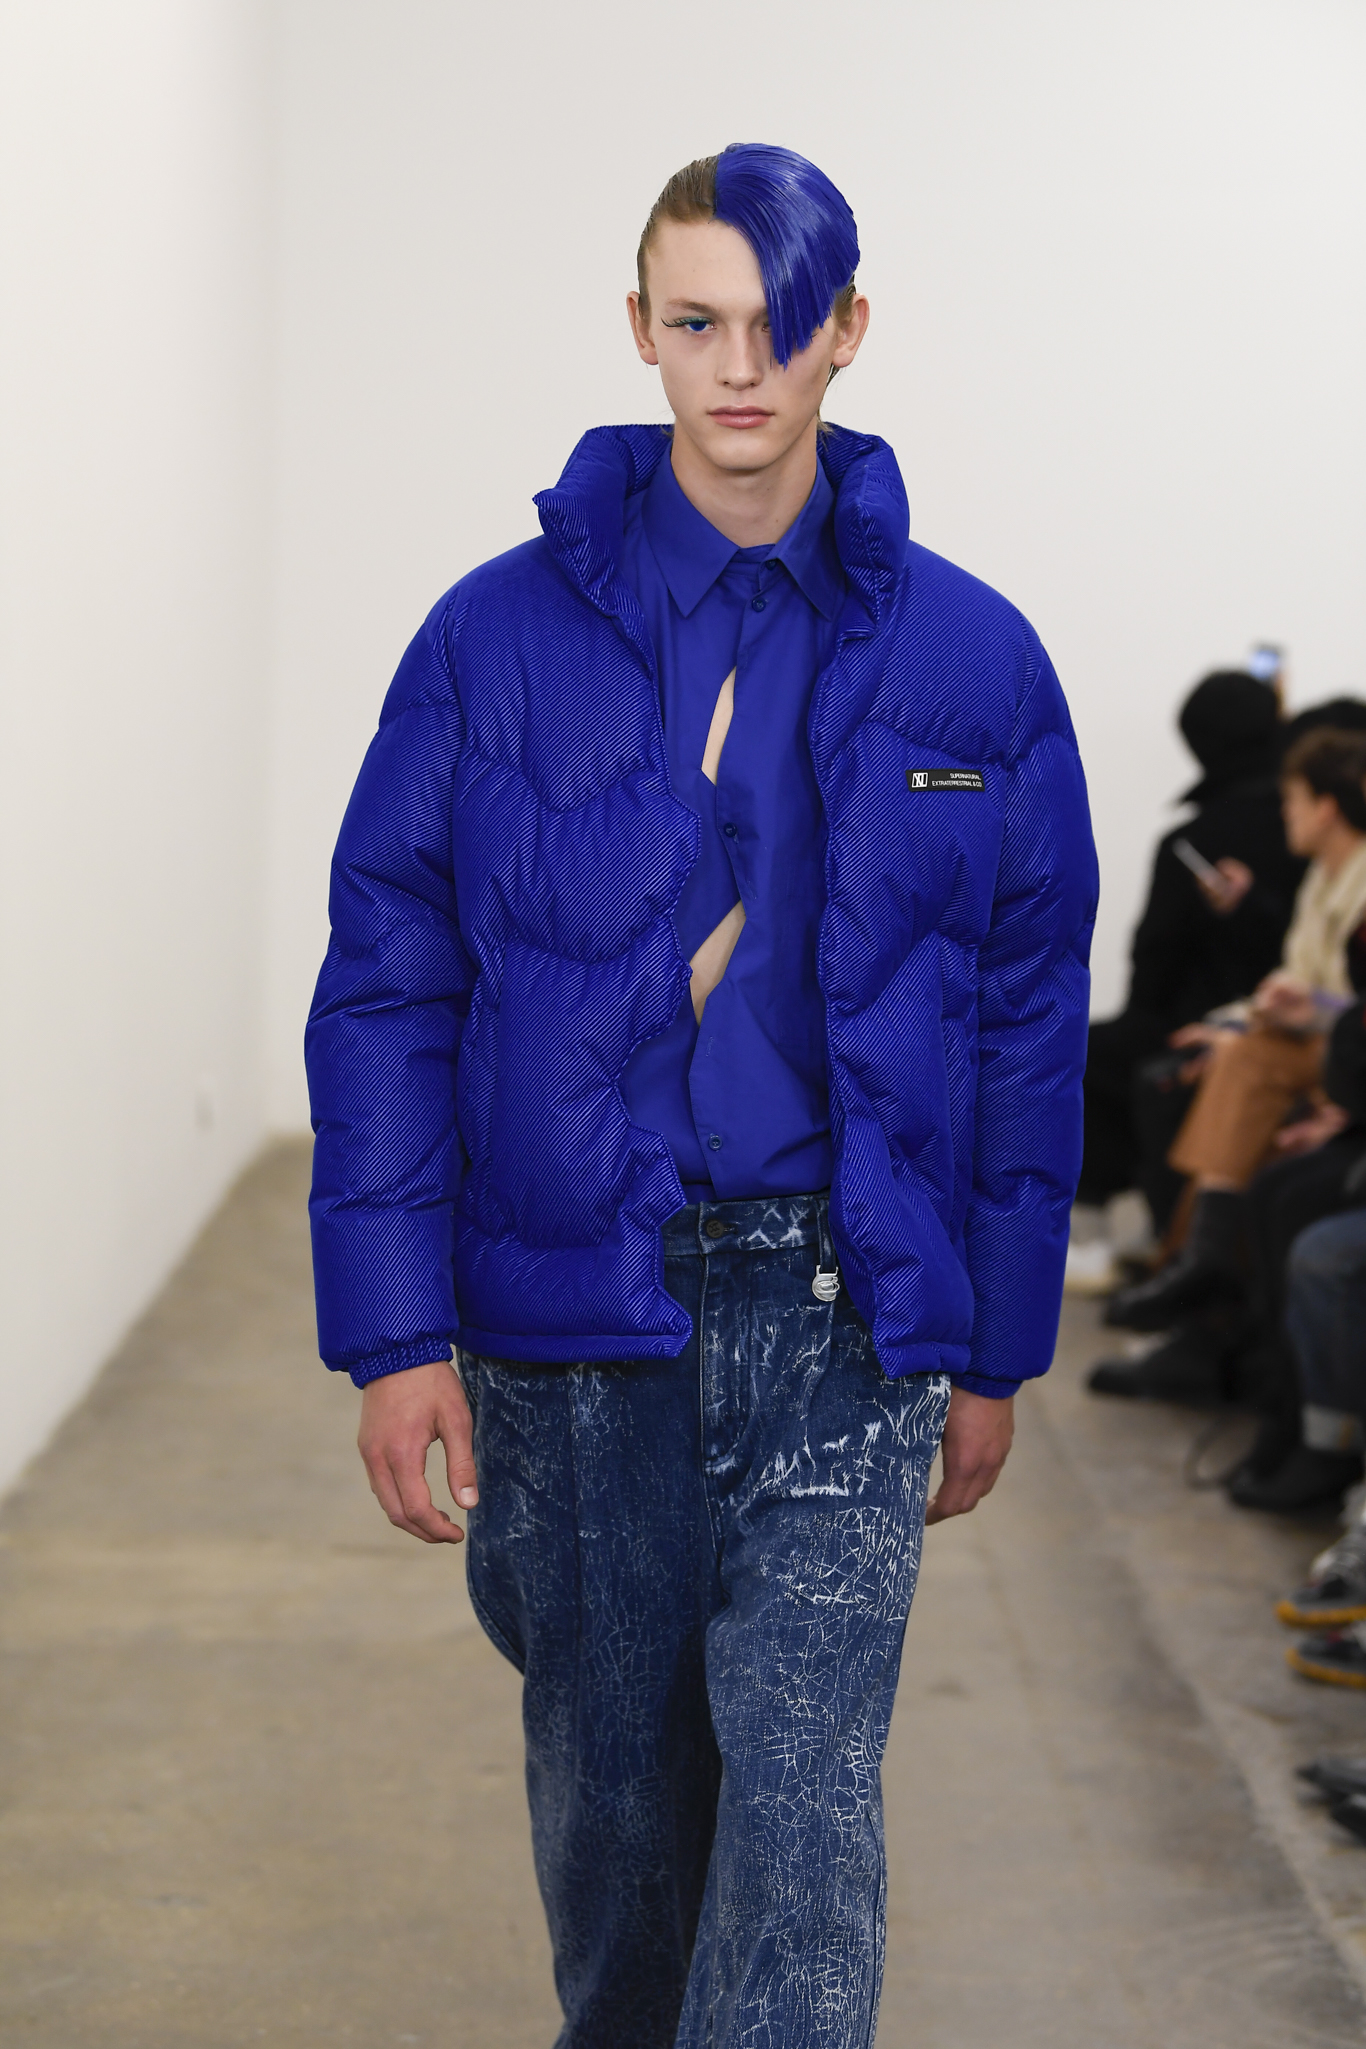 Xander Zhou LFW Men's Fall 2020, photographed in London on 05 January 2020